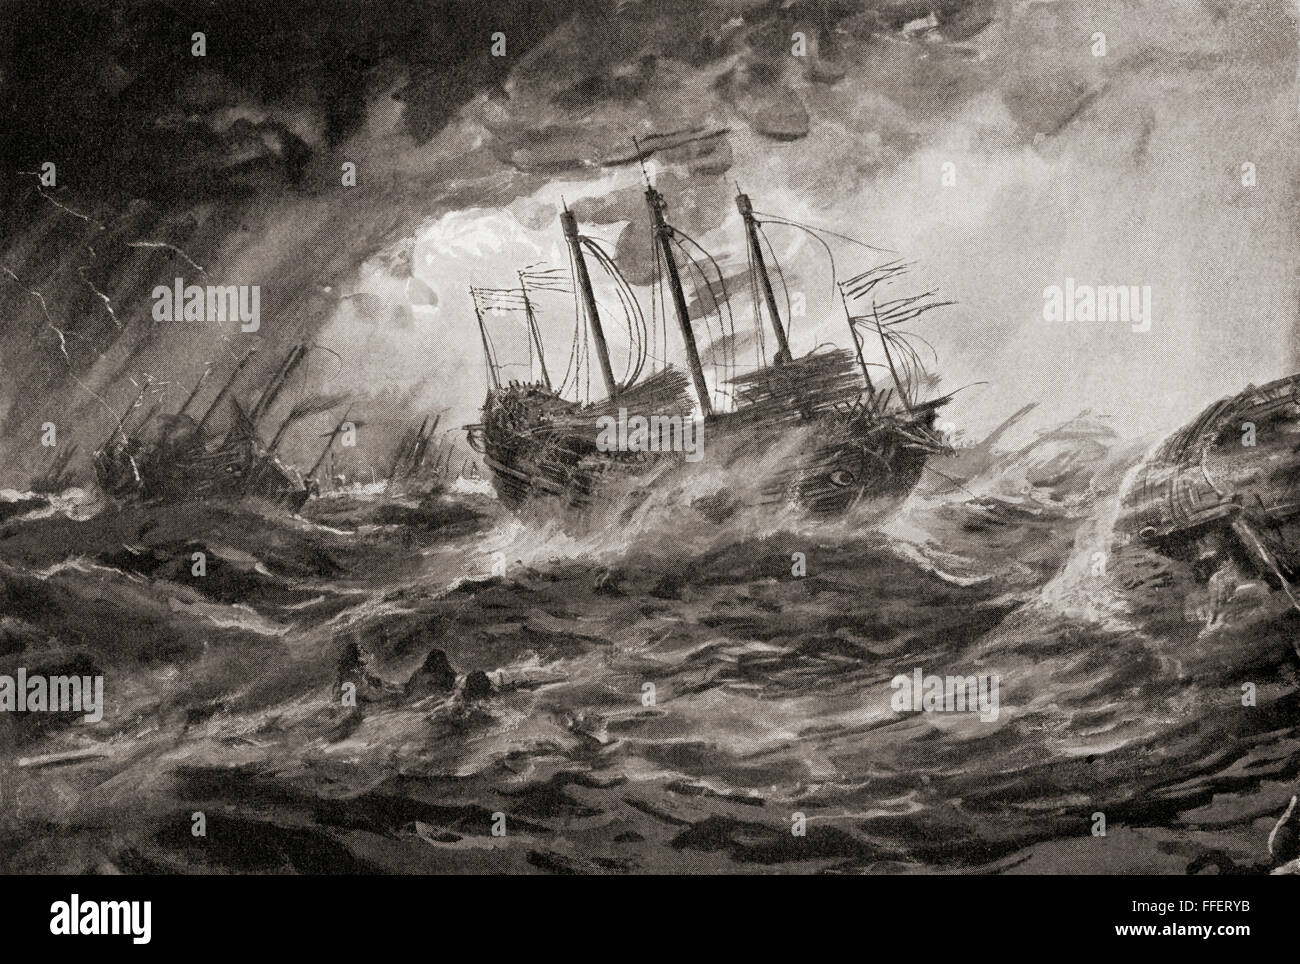 The wreck of Kublai Khan's Mongol fleet during the second invasion of Japan in 1281 due to the typhoon, Kamikaze, - Stock Image